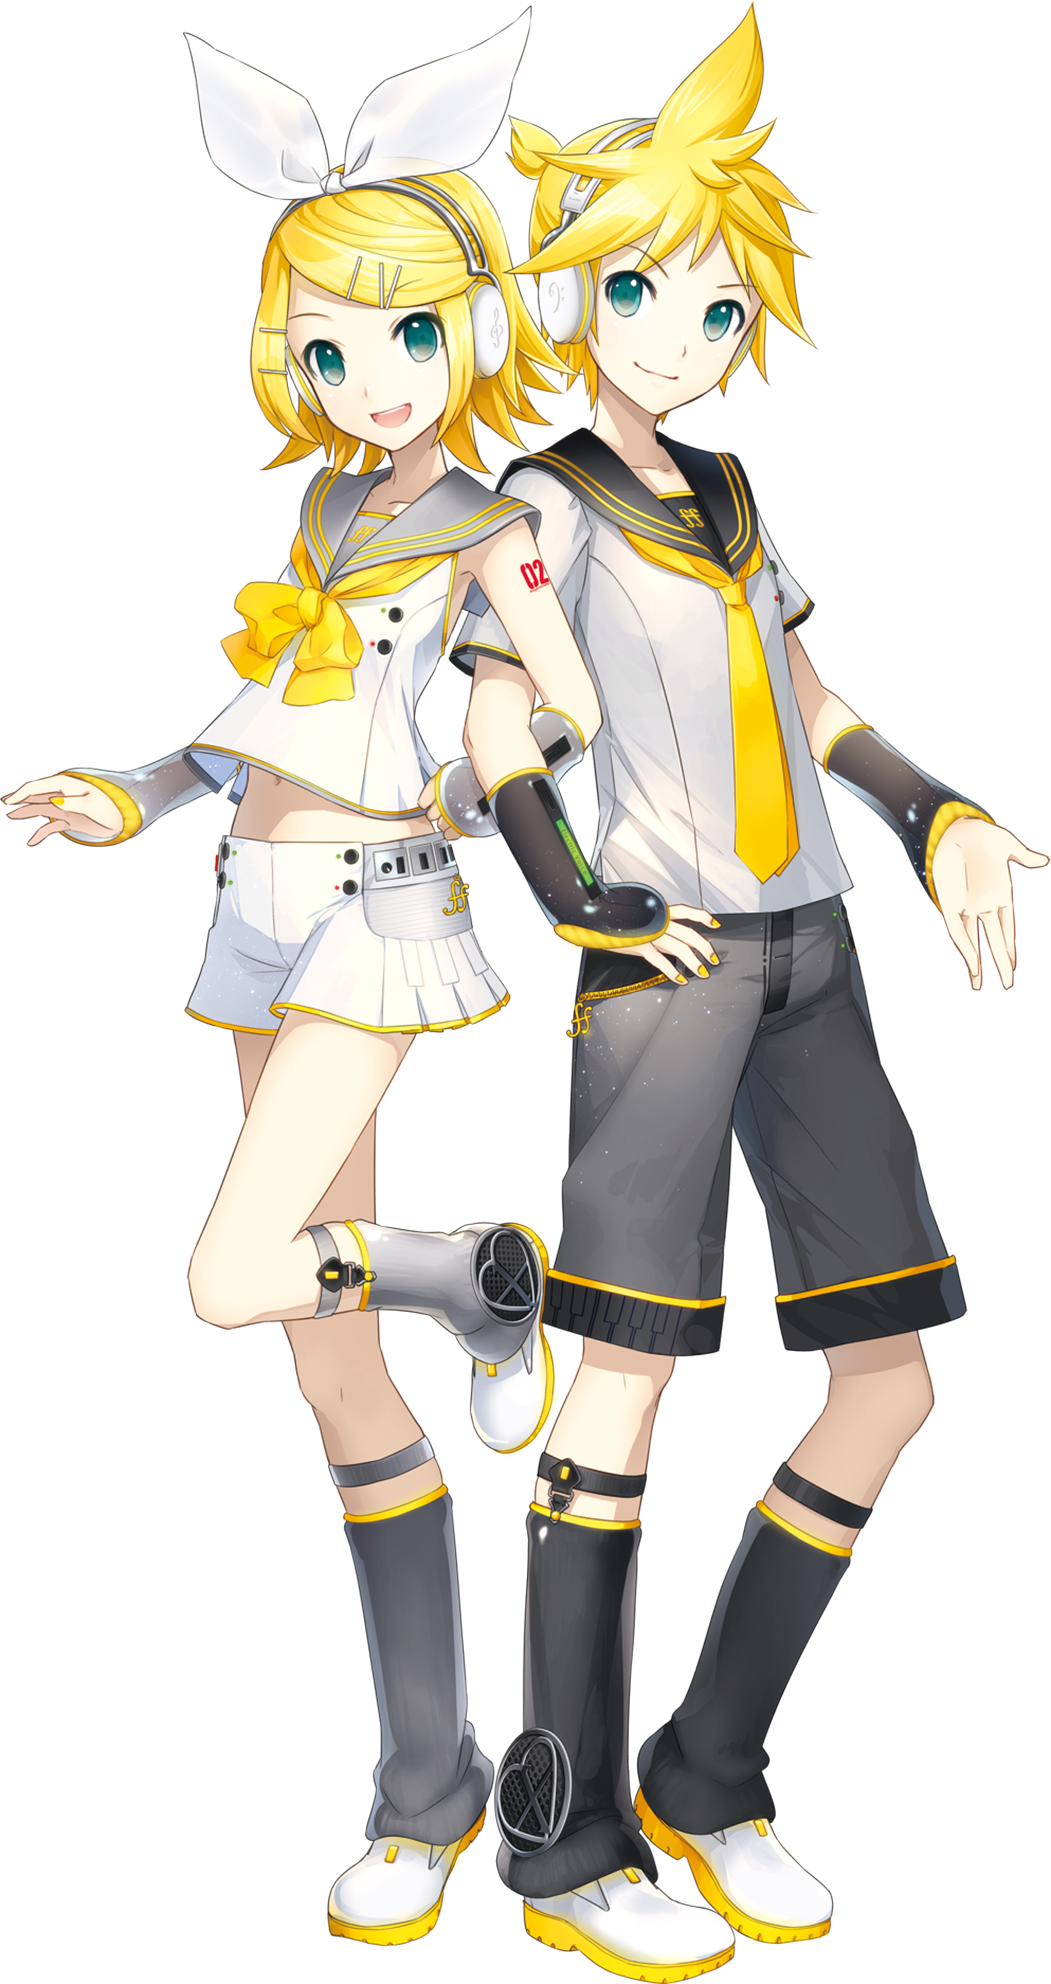 Kagamine Rin & Len | Vocaloid Wiki | FANDOM powered by Wikia